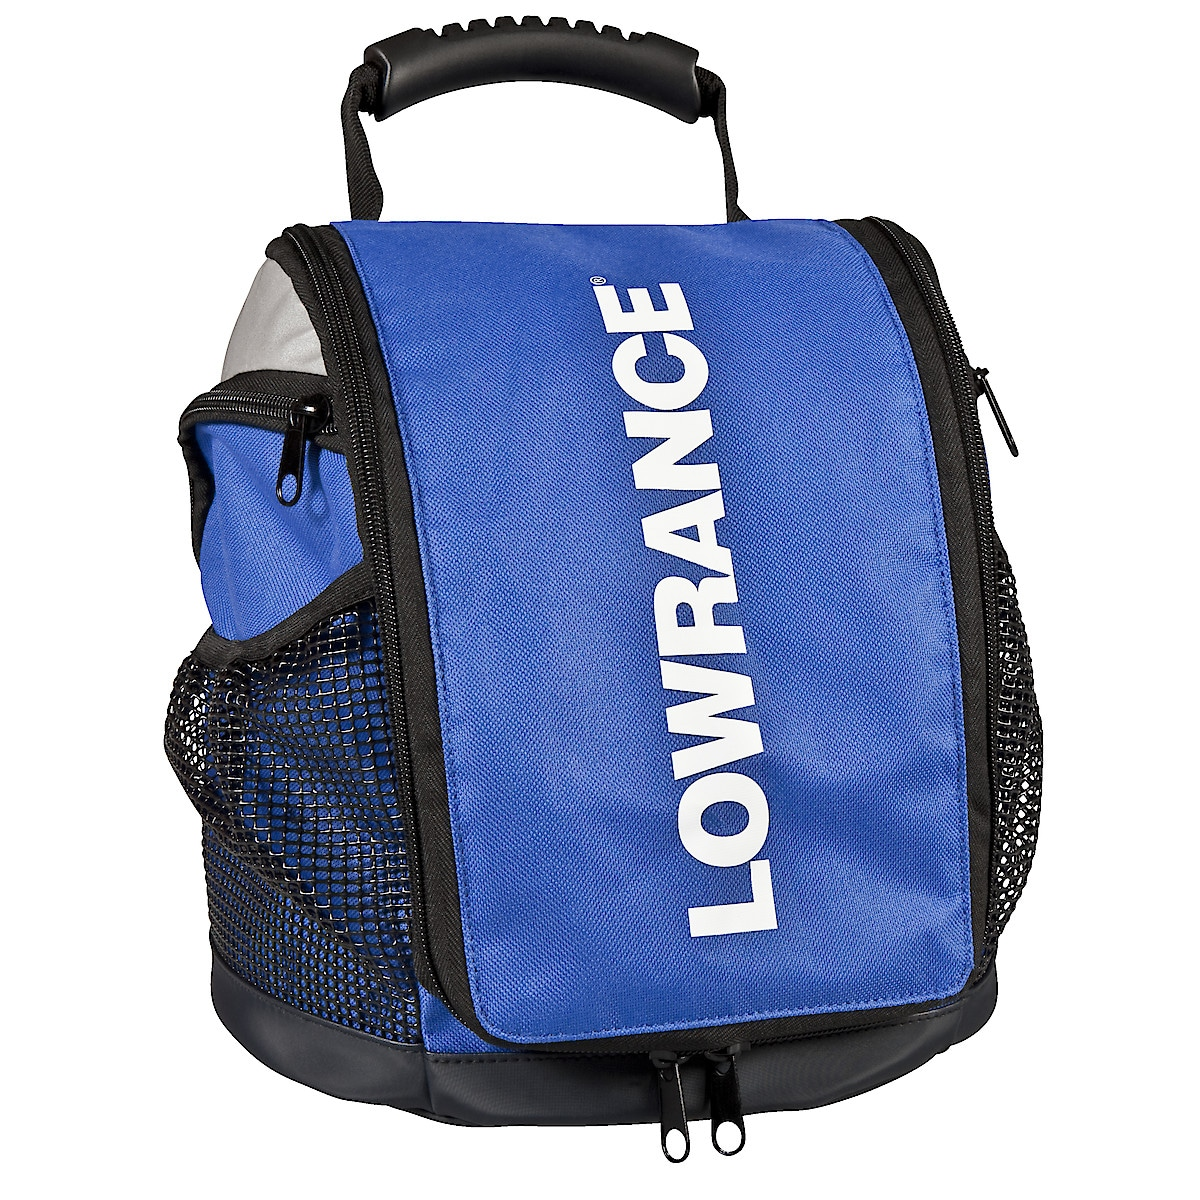 Lowrance PPP-17 Portable Power Pack